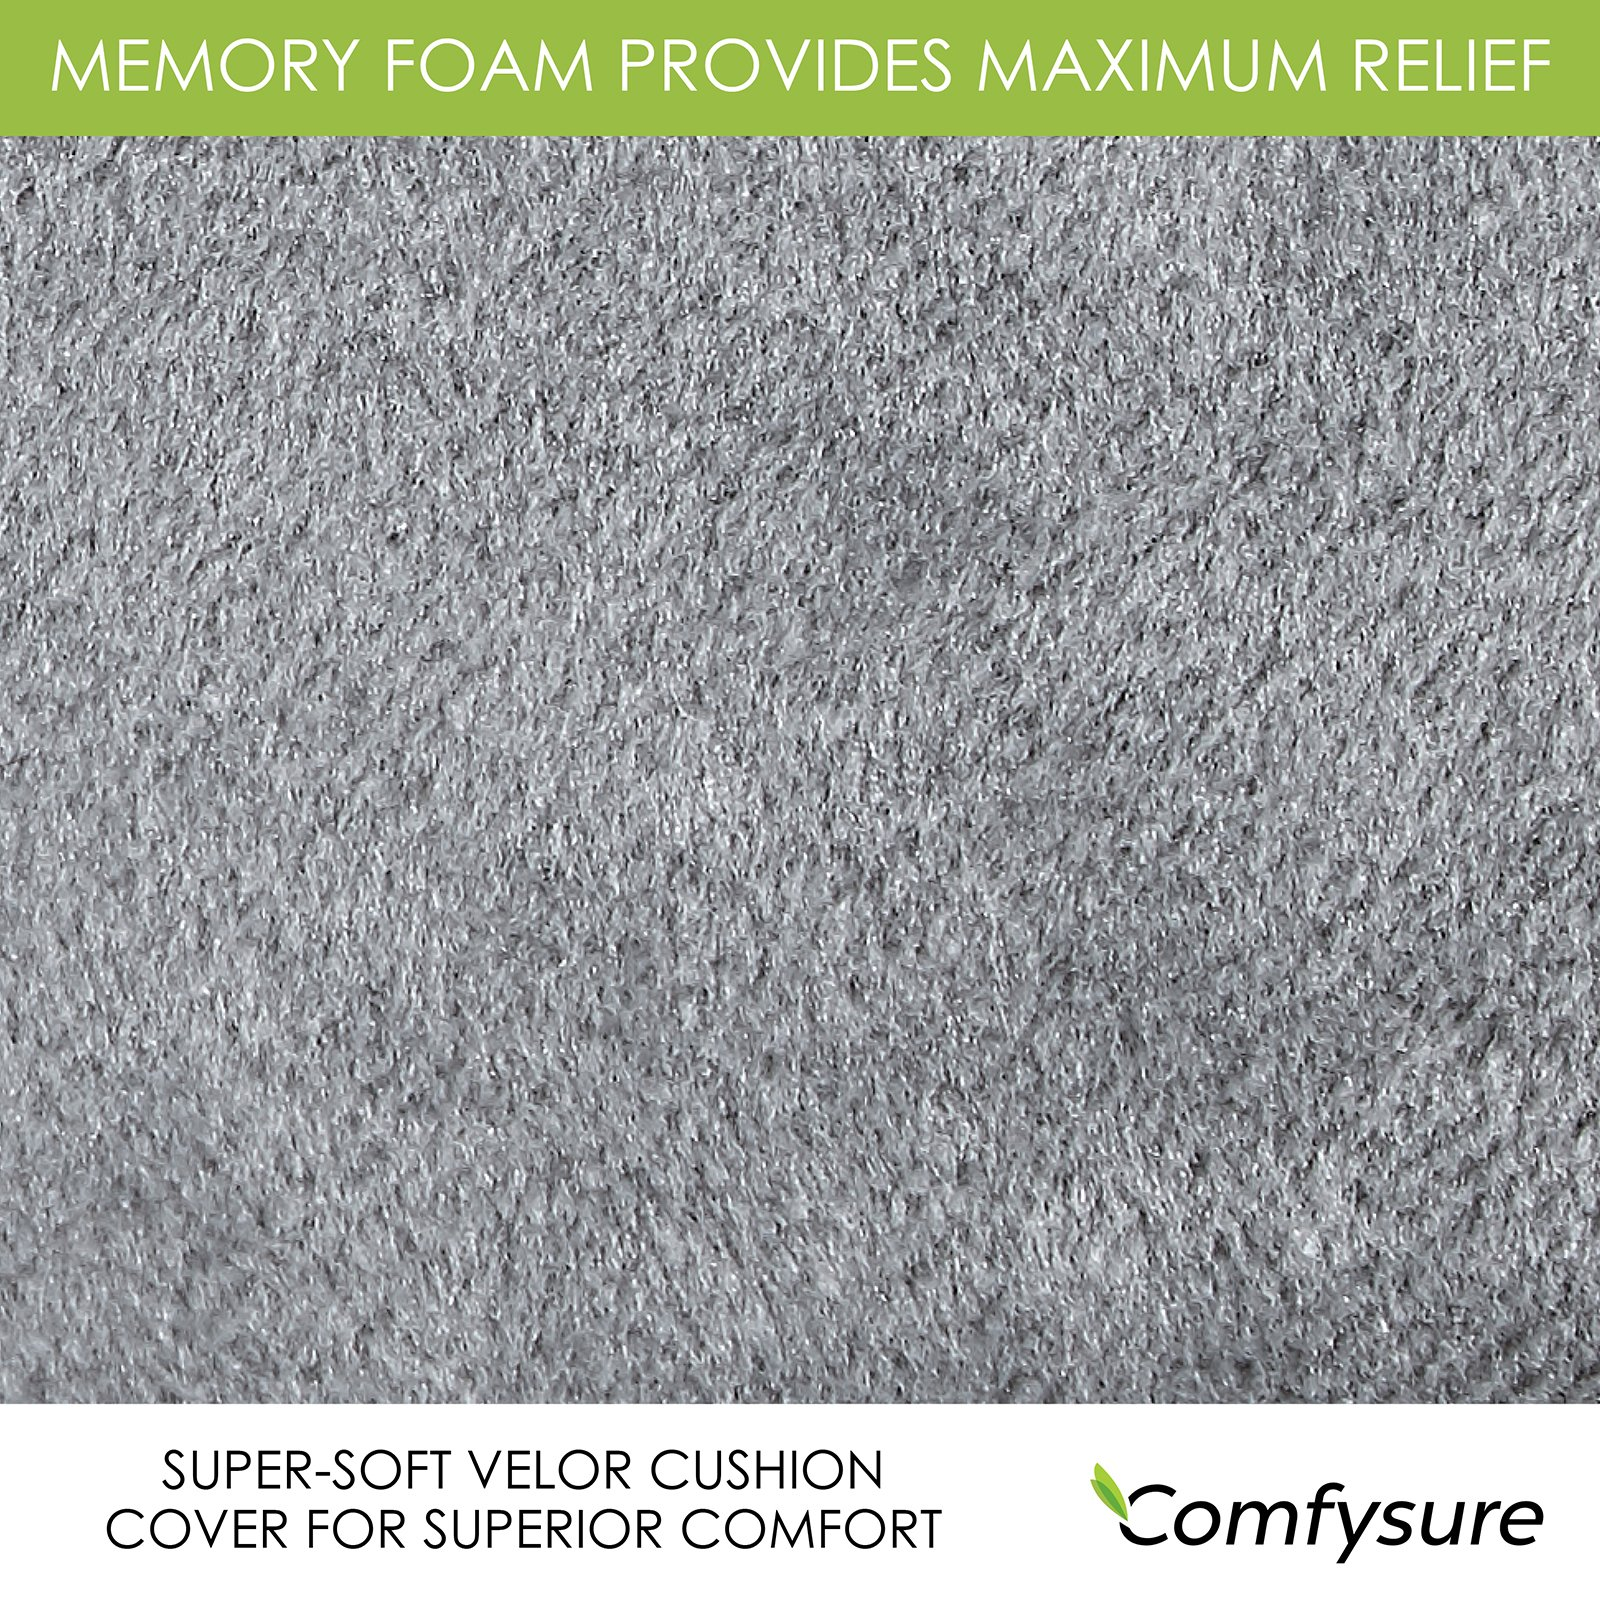 ComfySure Memory Foam Back Cushion – Lumbar Support Backrest Pillow with Dual Adjustable Straps - Soft and Comfortable - Relieves Lower Back Pain and Pressure - By